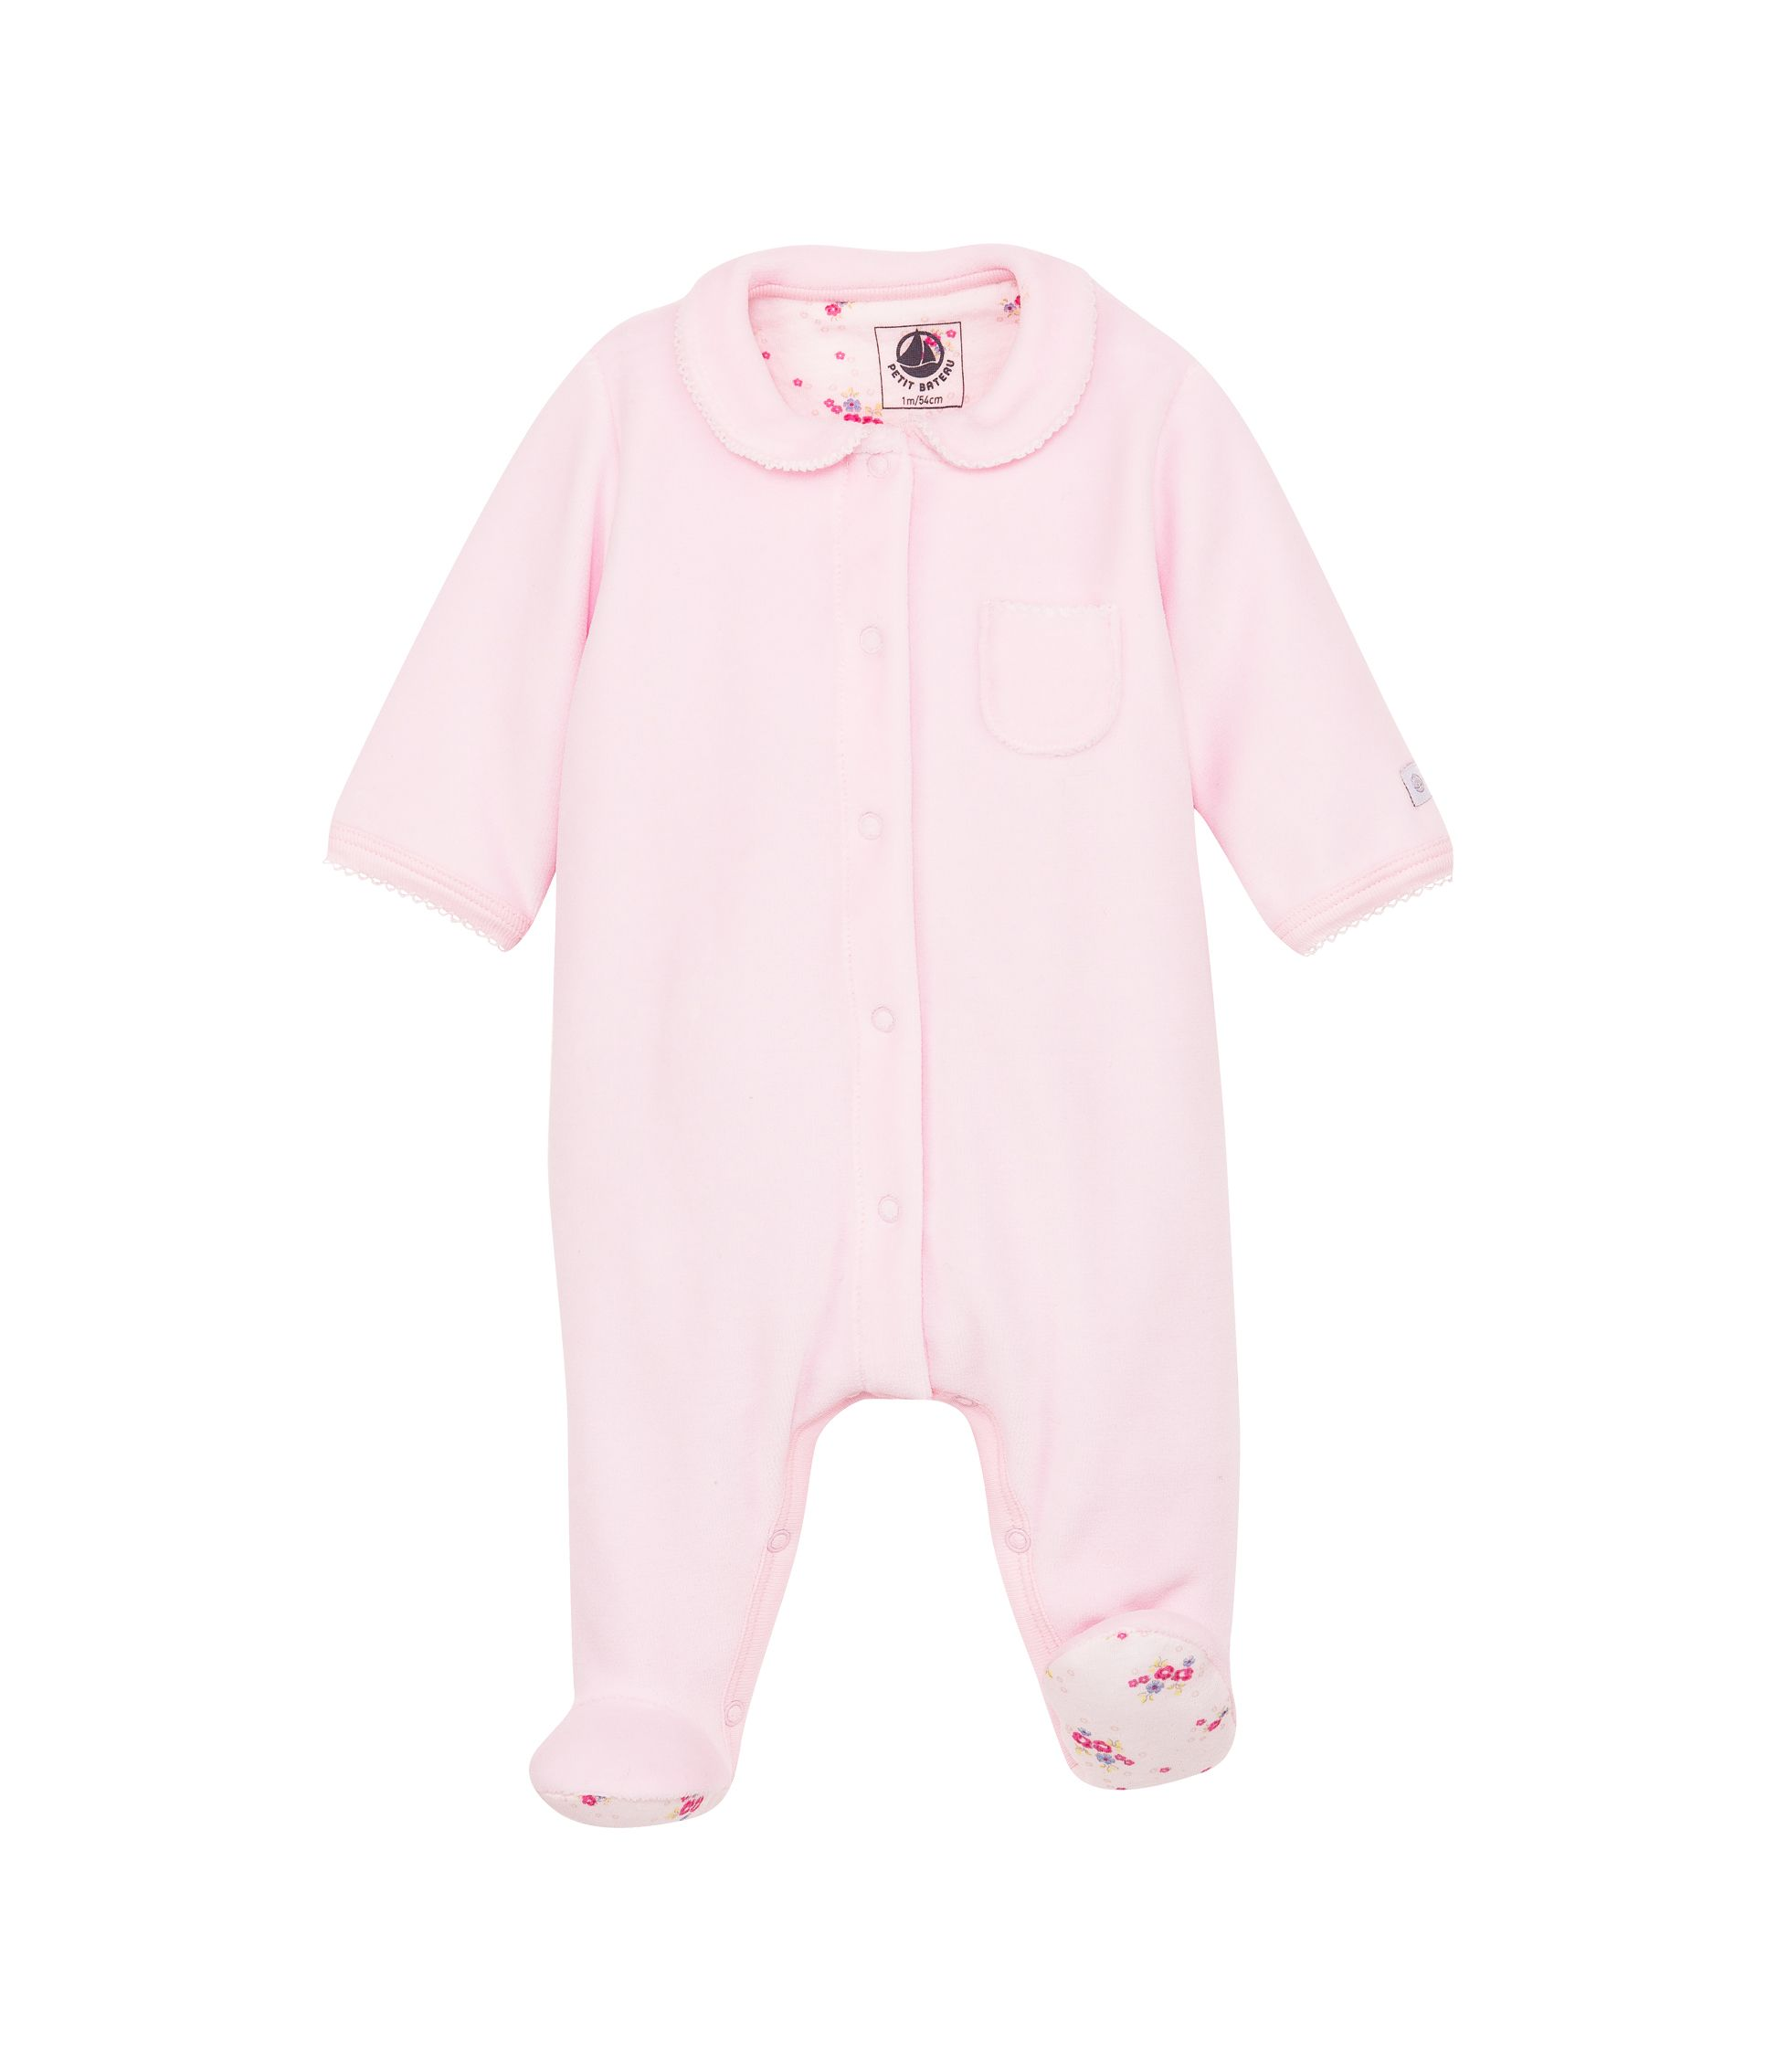 Baby girls plain sleepsuit